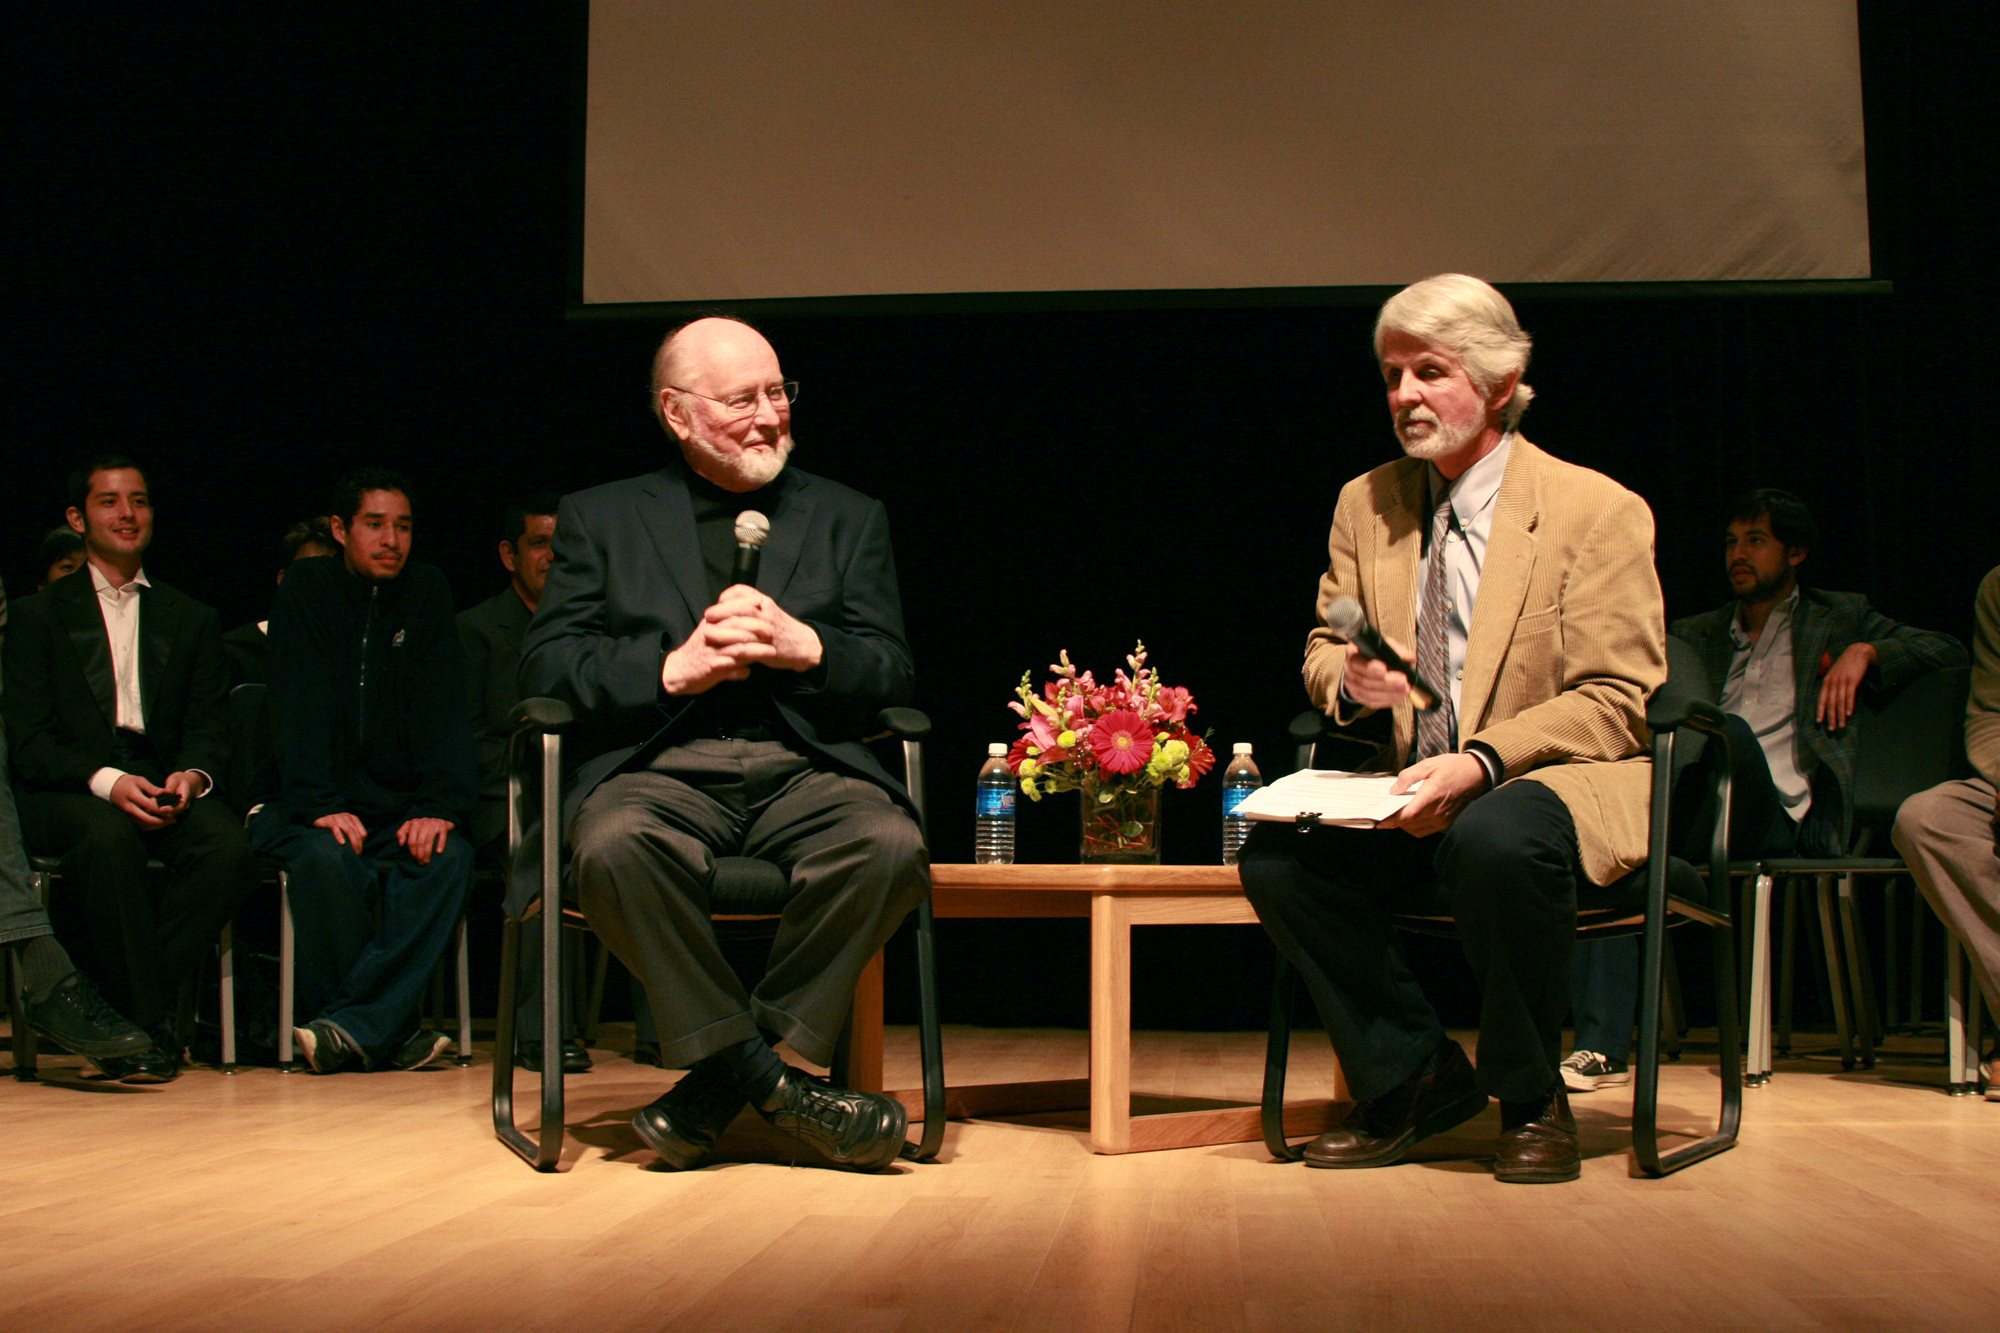 Academy Award winning composer John Williams in conversation with Professor Dutton, on stage in the recital hall.